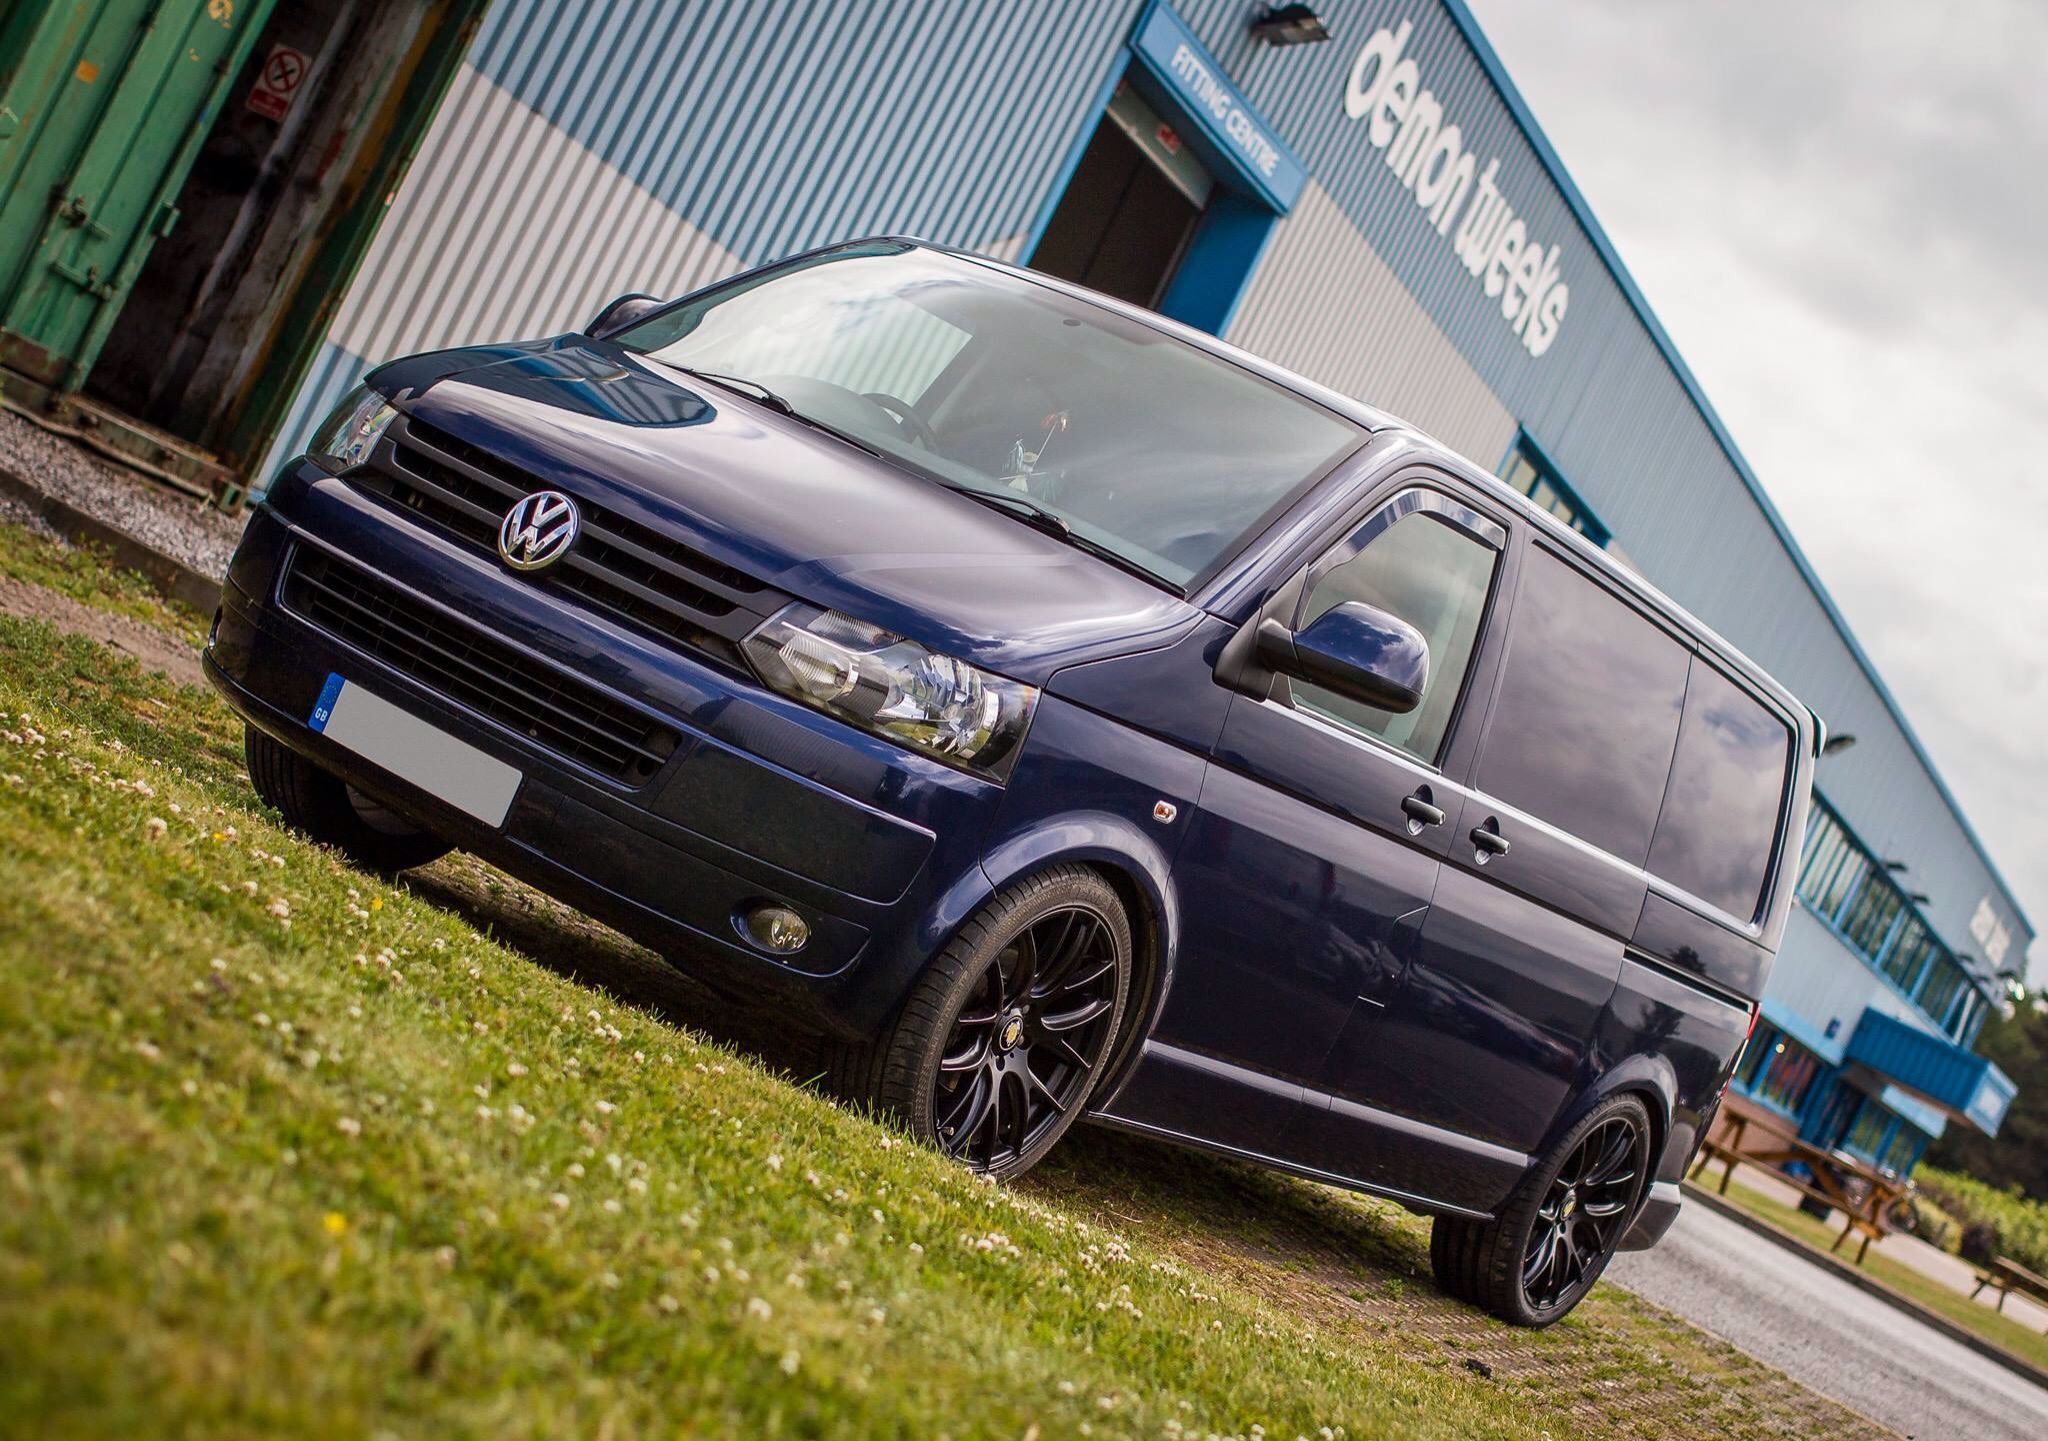 9faae85b85 My 2010 2.0tdi T5 VW transporter on Bilsten B14 s with Miltek exhaust and  Superchips remap 180bhp.